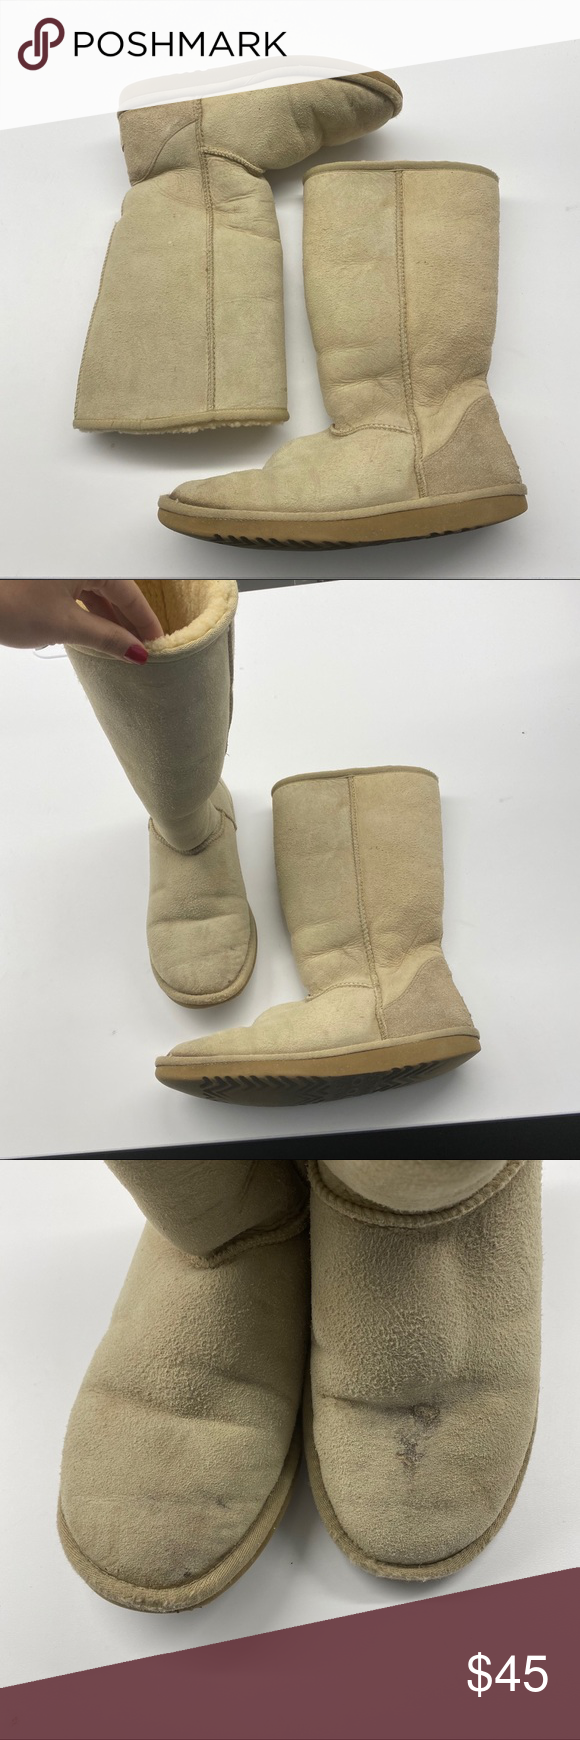 TAN UGGS SIZE 9. VERY WORN/USED CONDITION. STAINS THROUGHOUT. UGG Shoes Winter & Rain Boots #myposhpicks